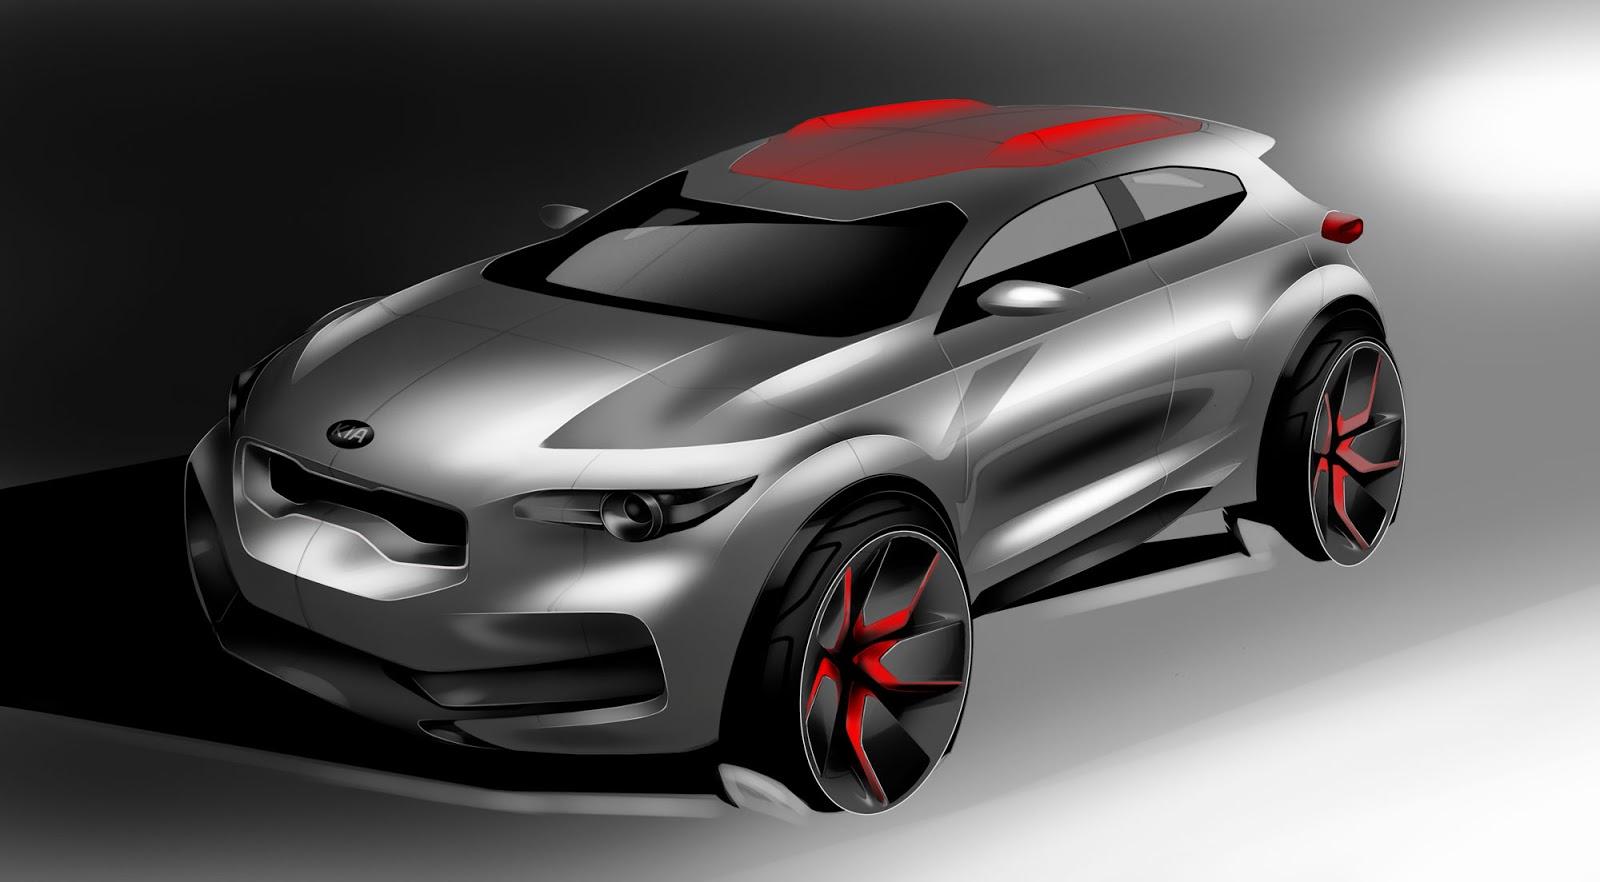 Kia Stonic sketch - front of styling option 2